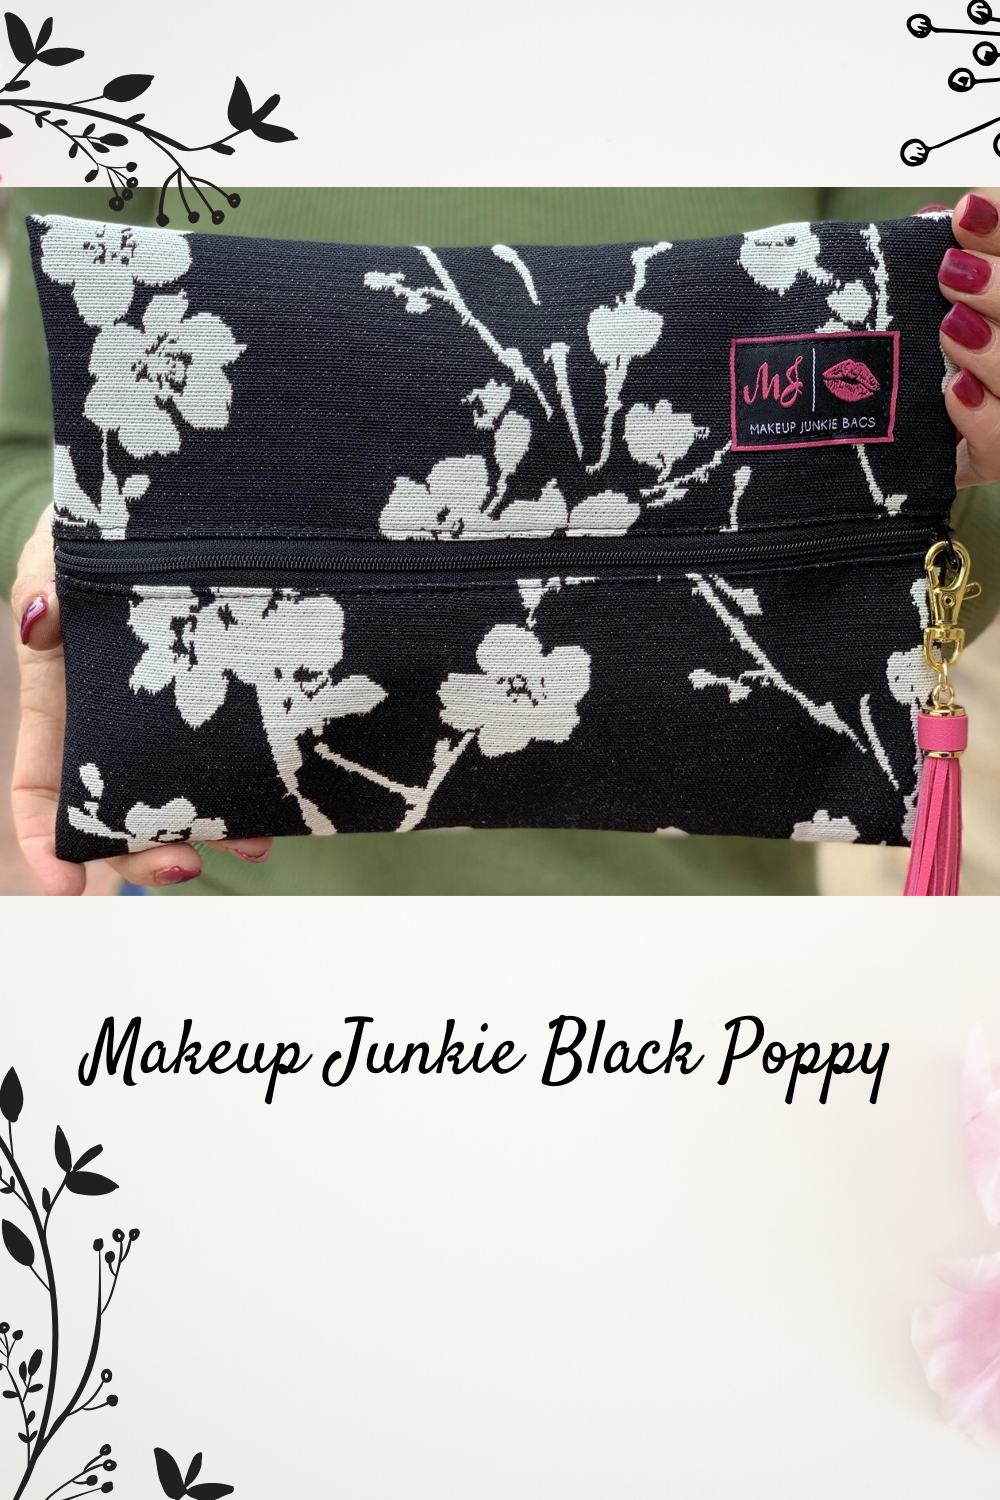 Makeup Junkie Black Poppy bag in 2020 Black poppy